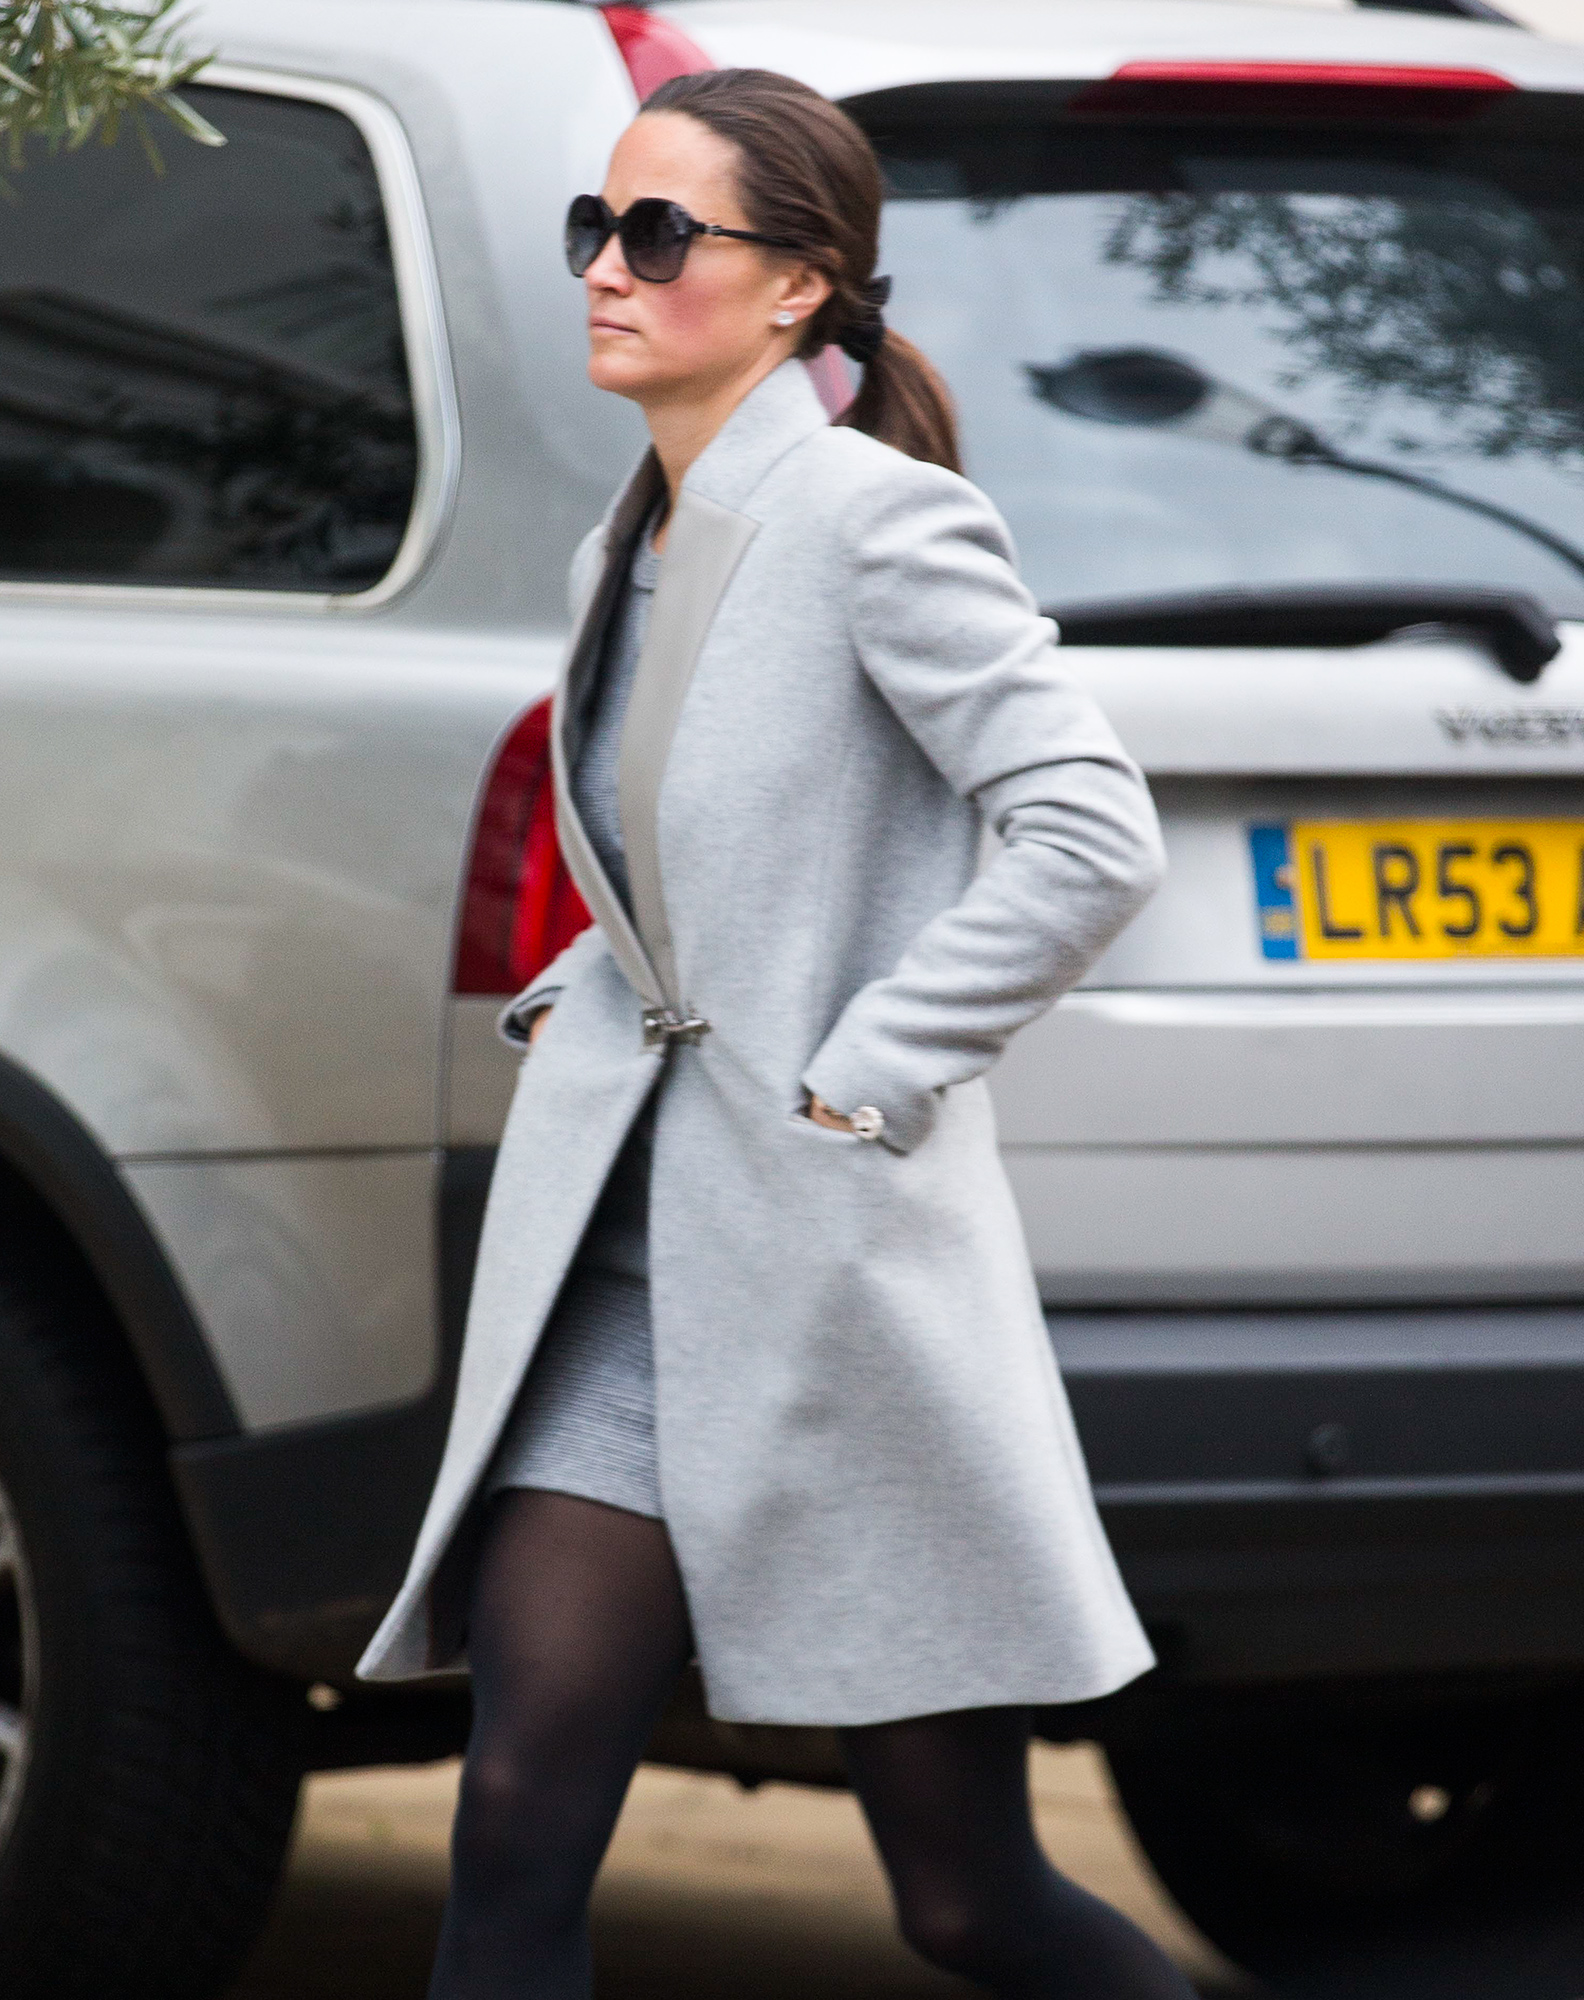 EXCLUSIVE: Pippa Middleton is spotted out in west London